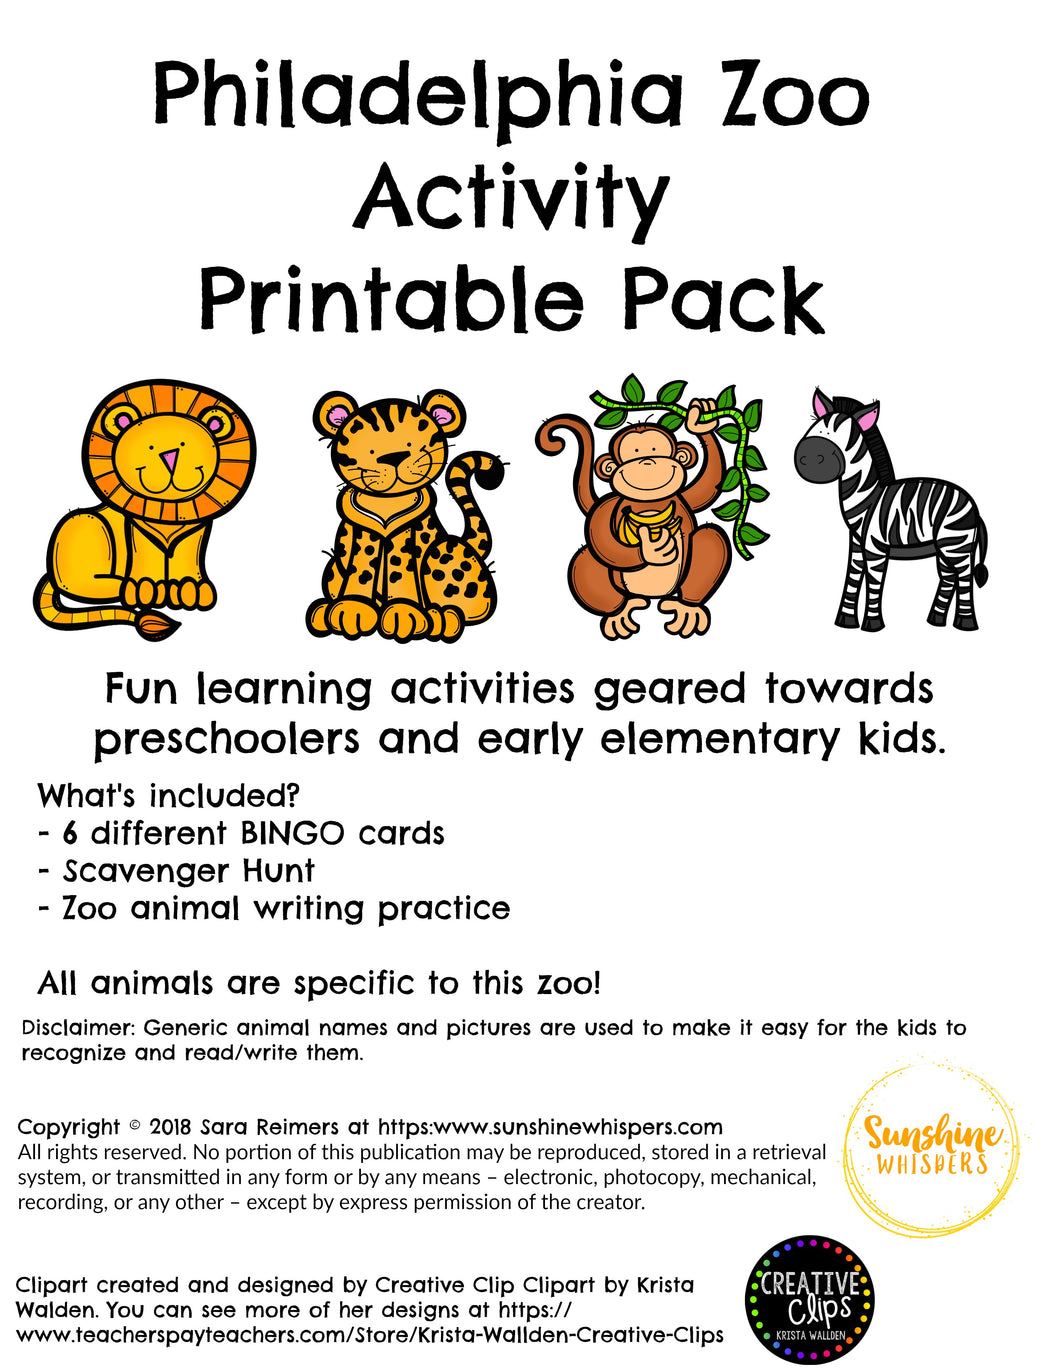 photo about Zoo Scavenger Hunt Printable titled Philadelphia Zoo Game Printable Pack